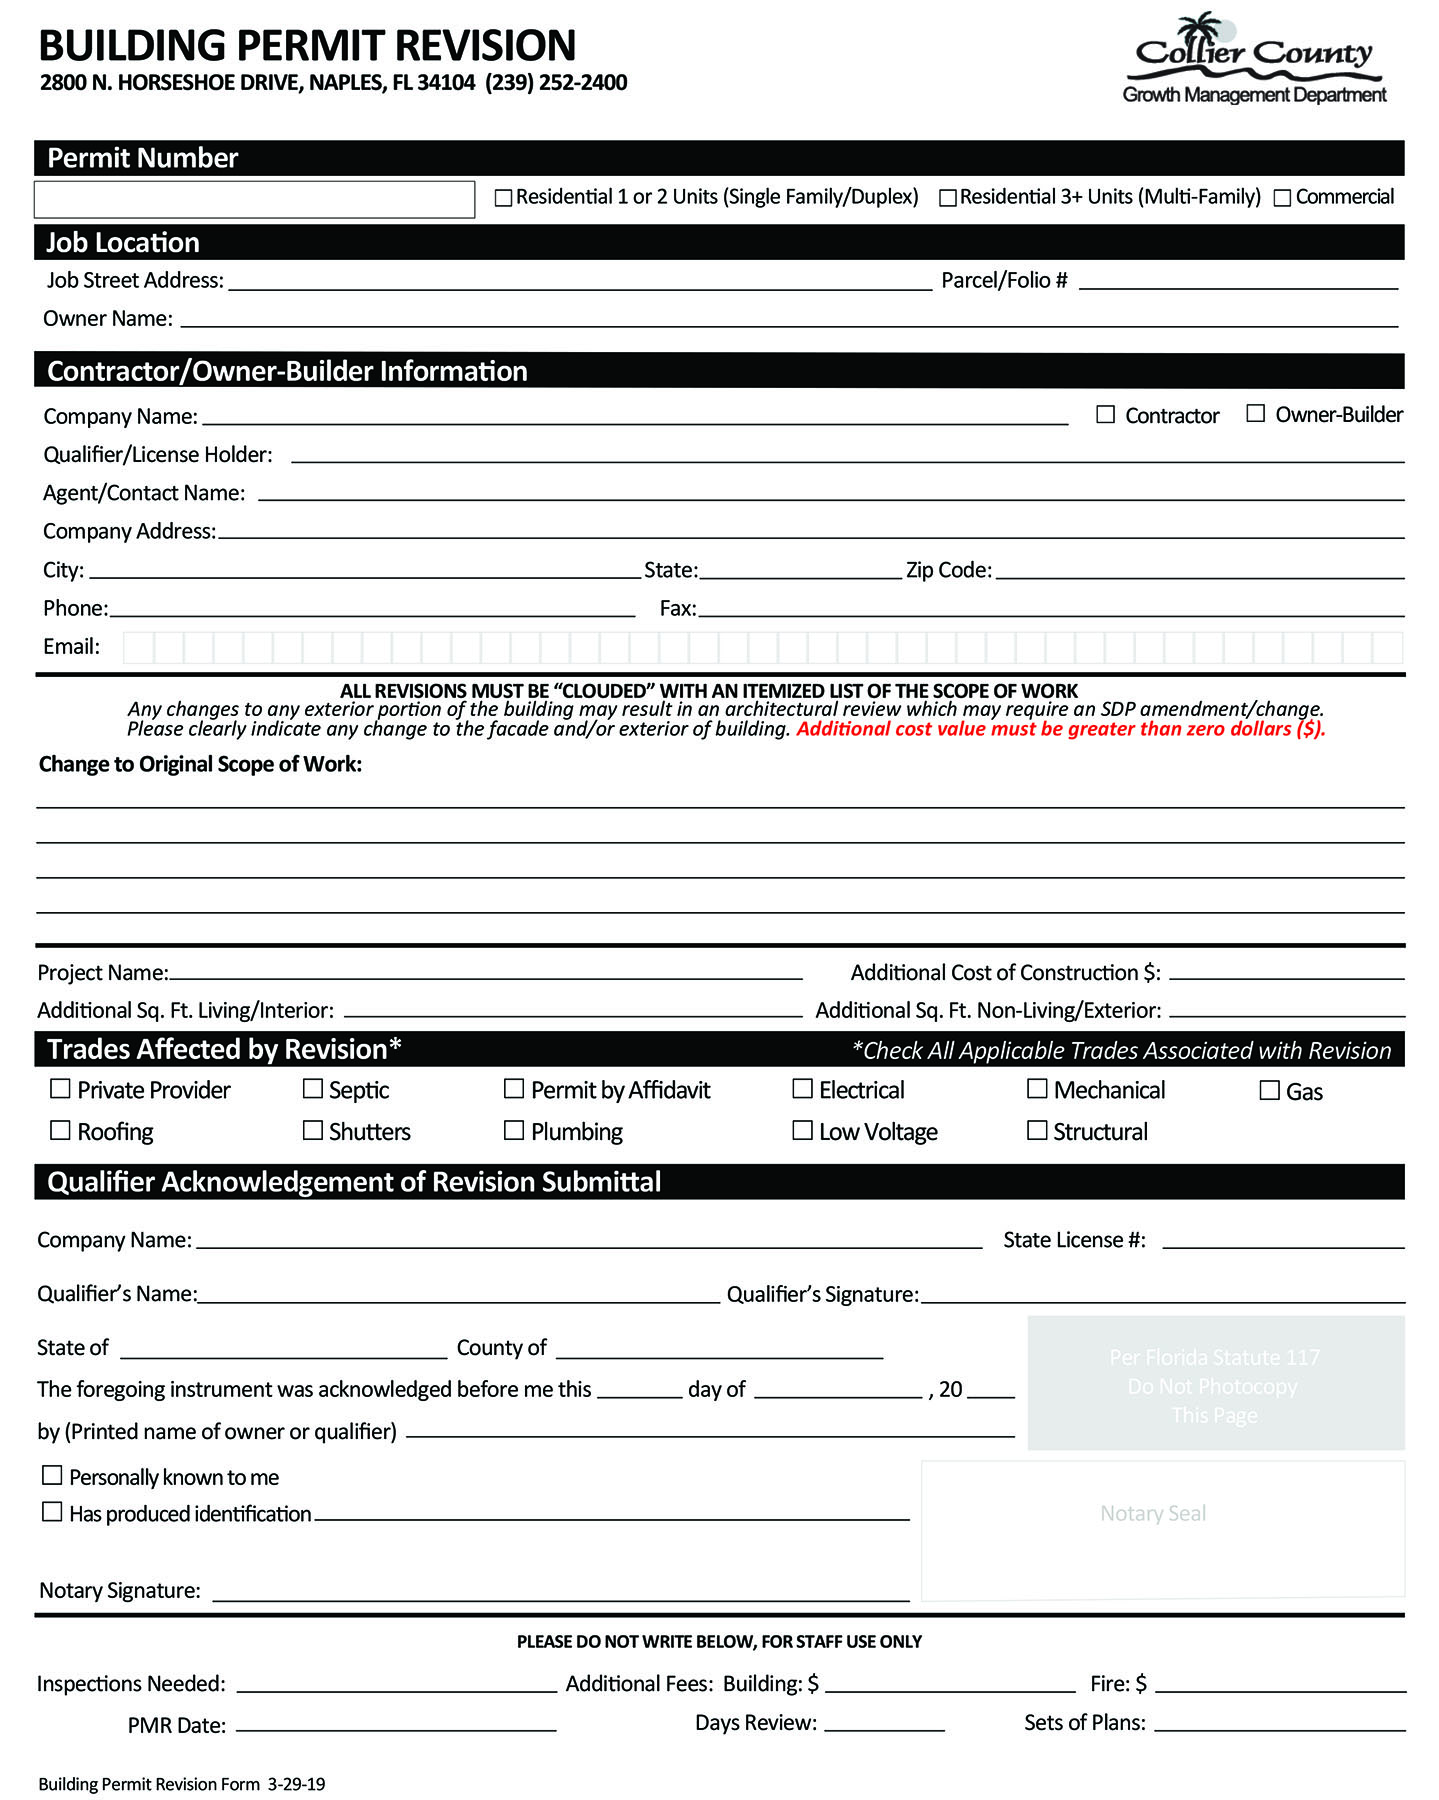 Application Forms Amp Submittal Requirements Collier